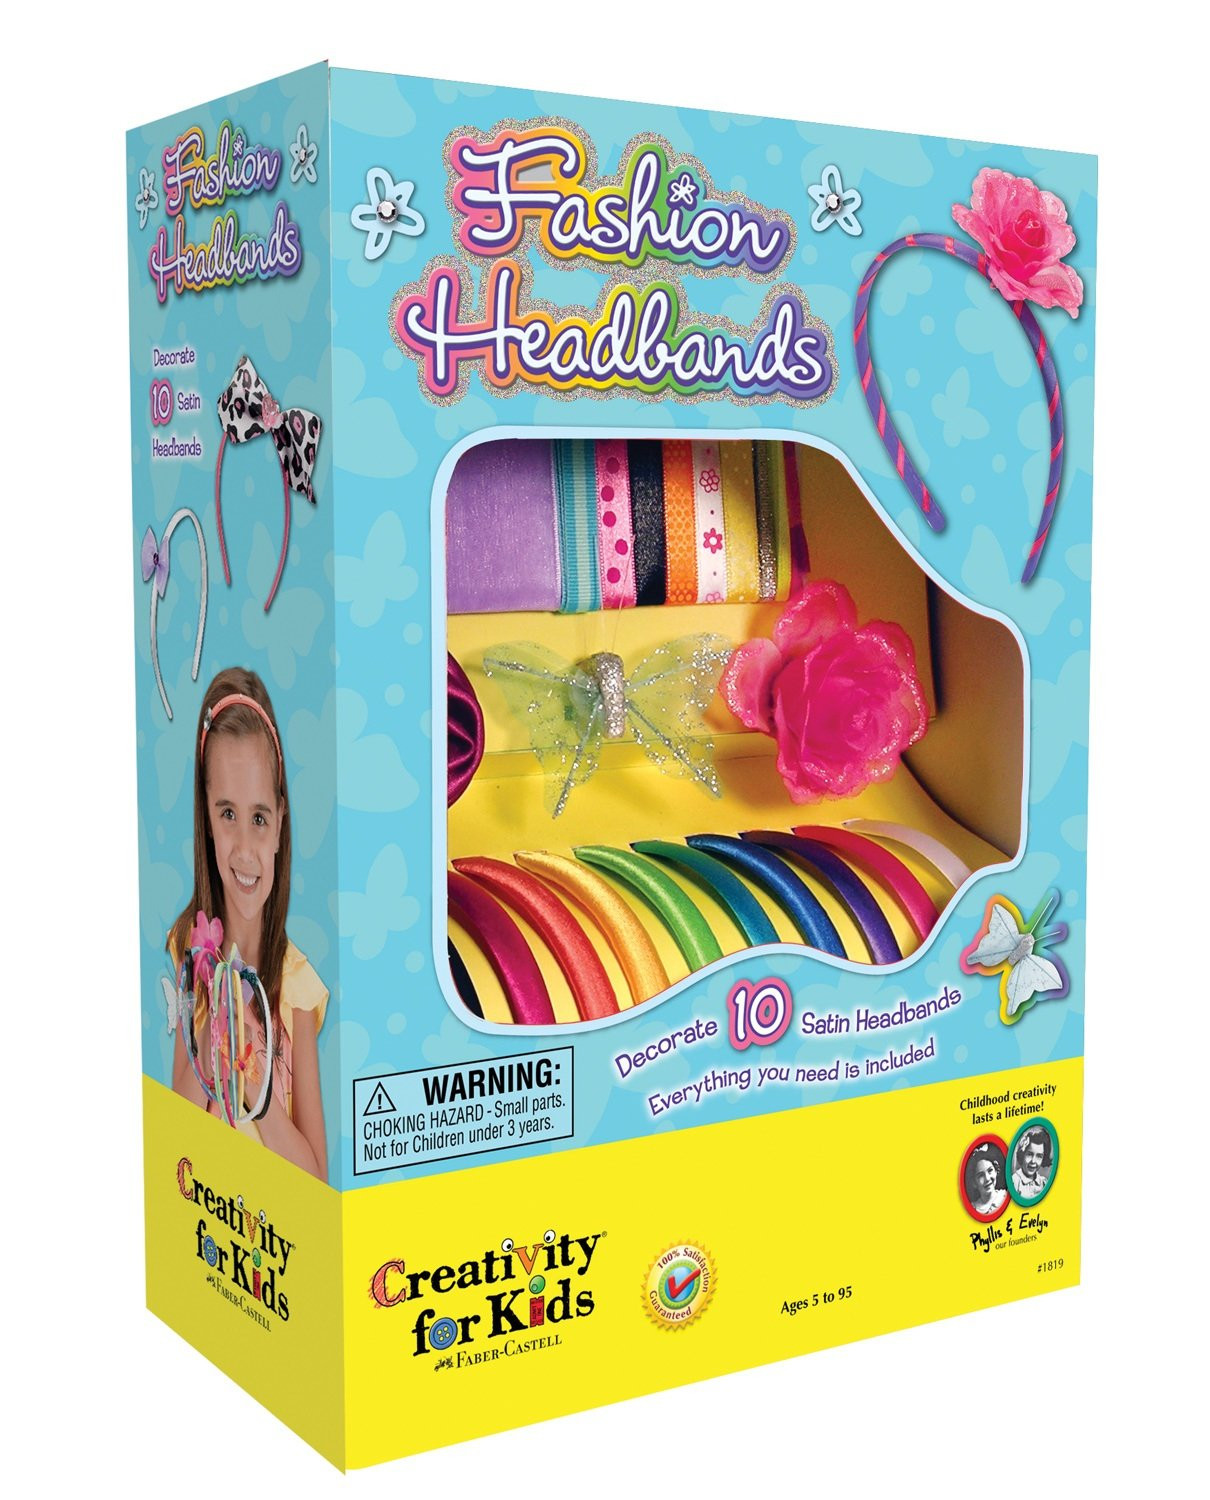 Toys For Girls Age 5 7 : Best gifts for year old girls in itsy bitsy fun